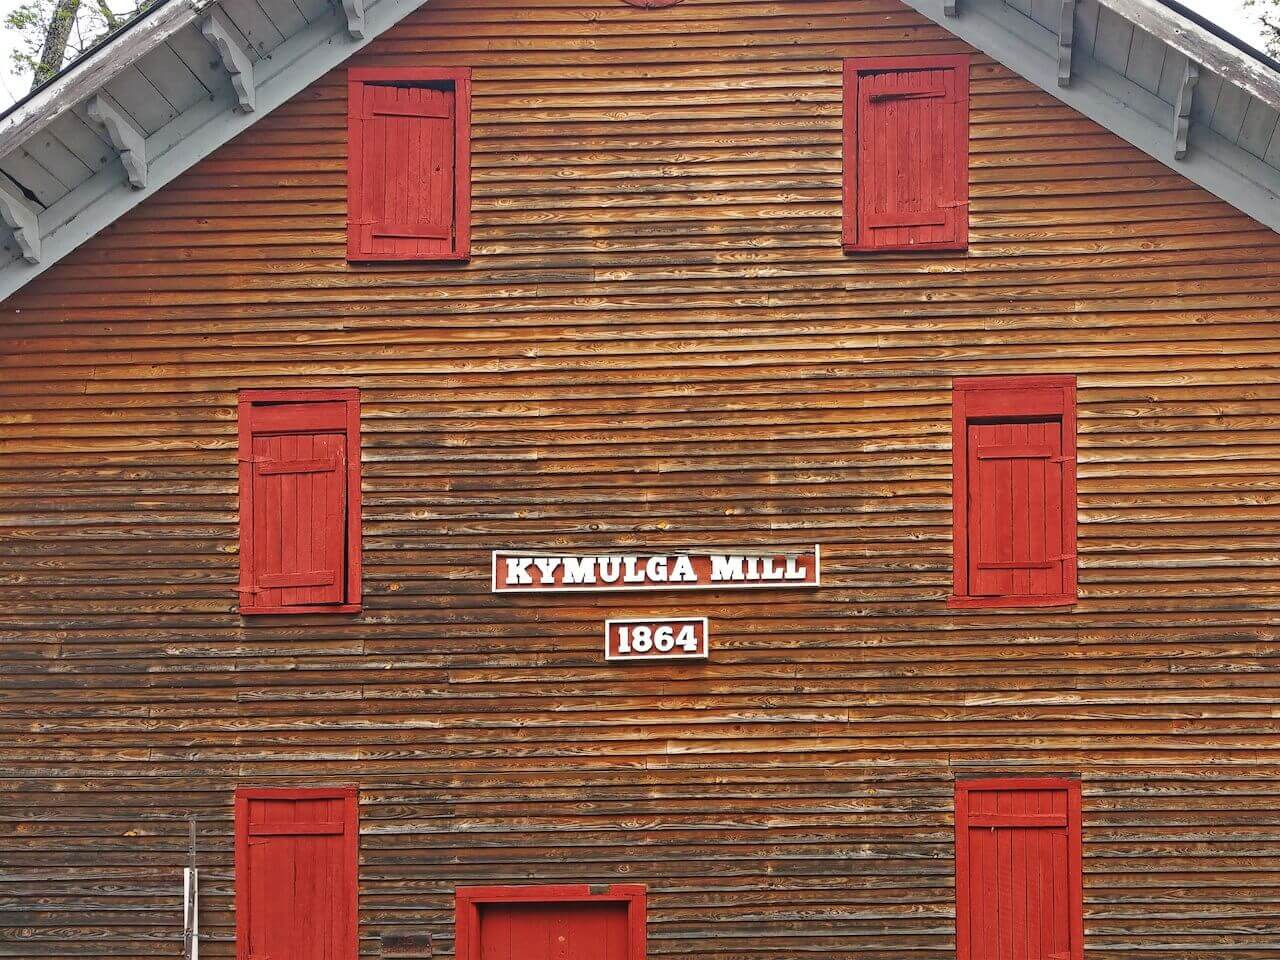 The Grist Mill is situated beside a charming little amphitheater, where bands play during the park's events such as the annual Kymulga Grits Festival in April.